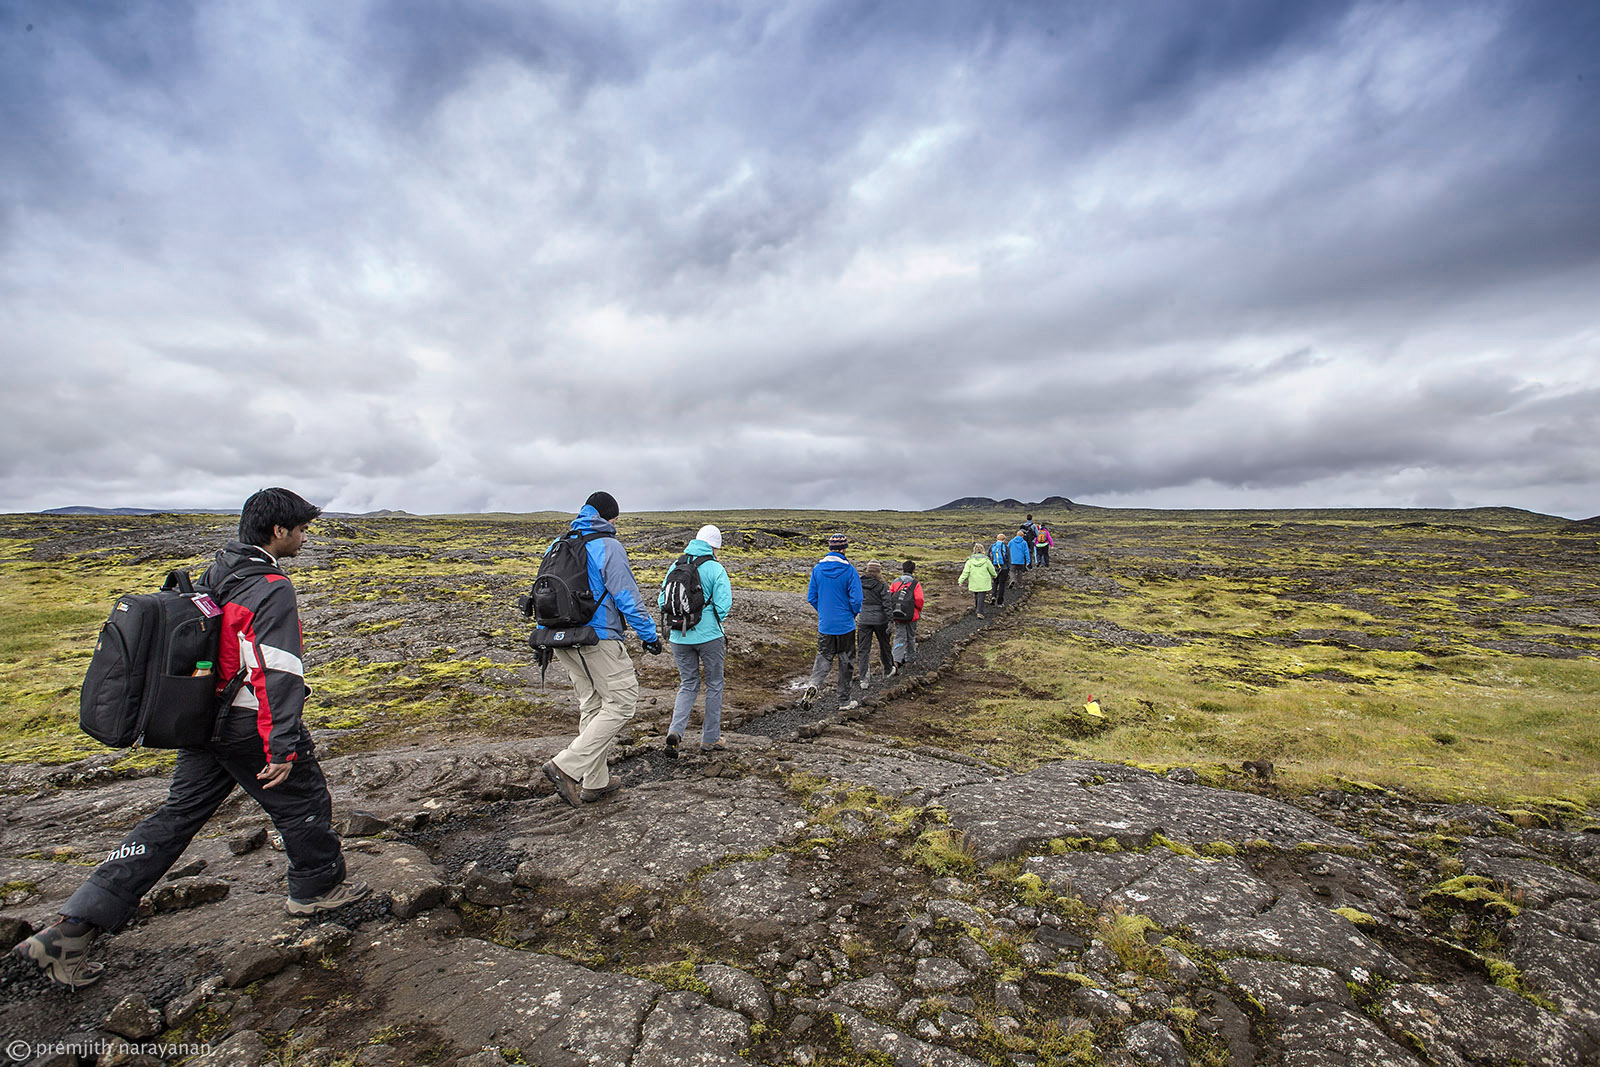 TREKKING  ON  THE  LAVA  FILEDS  TO  REACH  THE  VOLCANO.